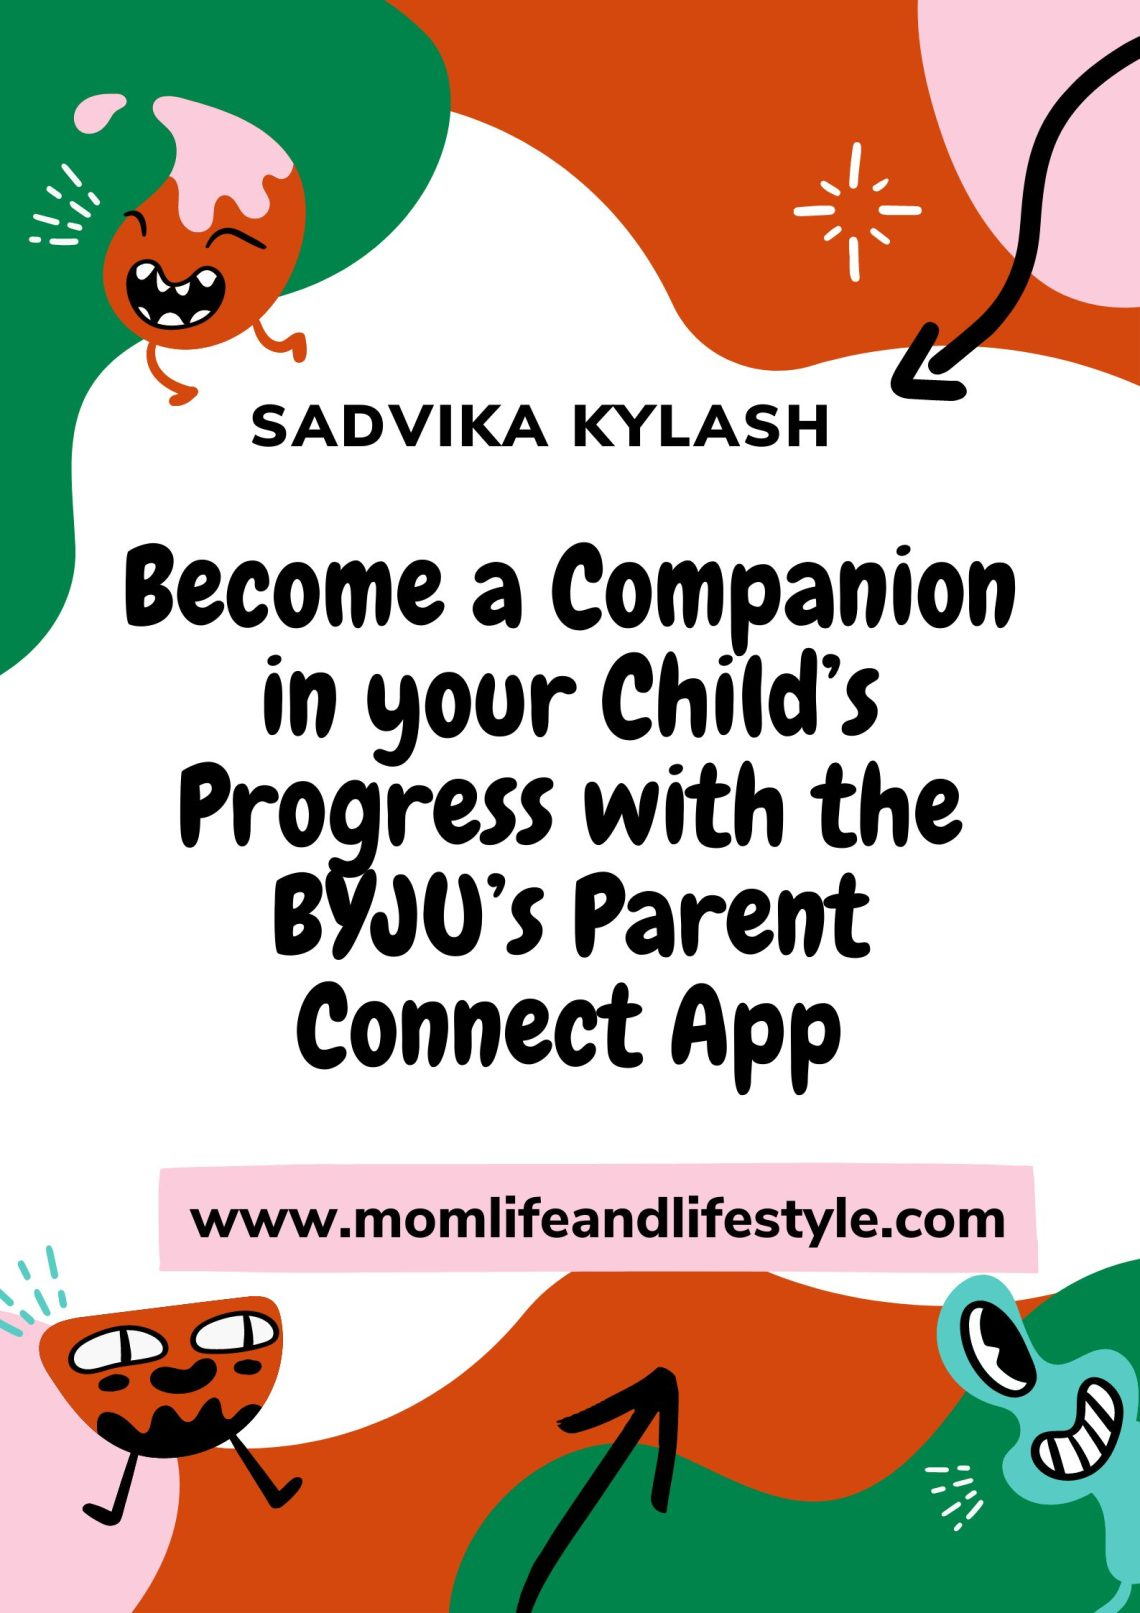 Become a Companion in your Child's Progress with the BYJU's Parent Connect App